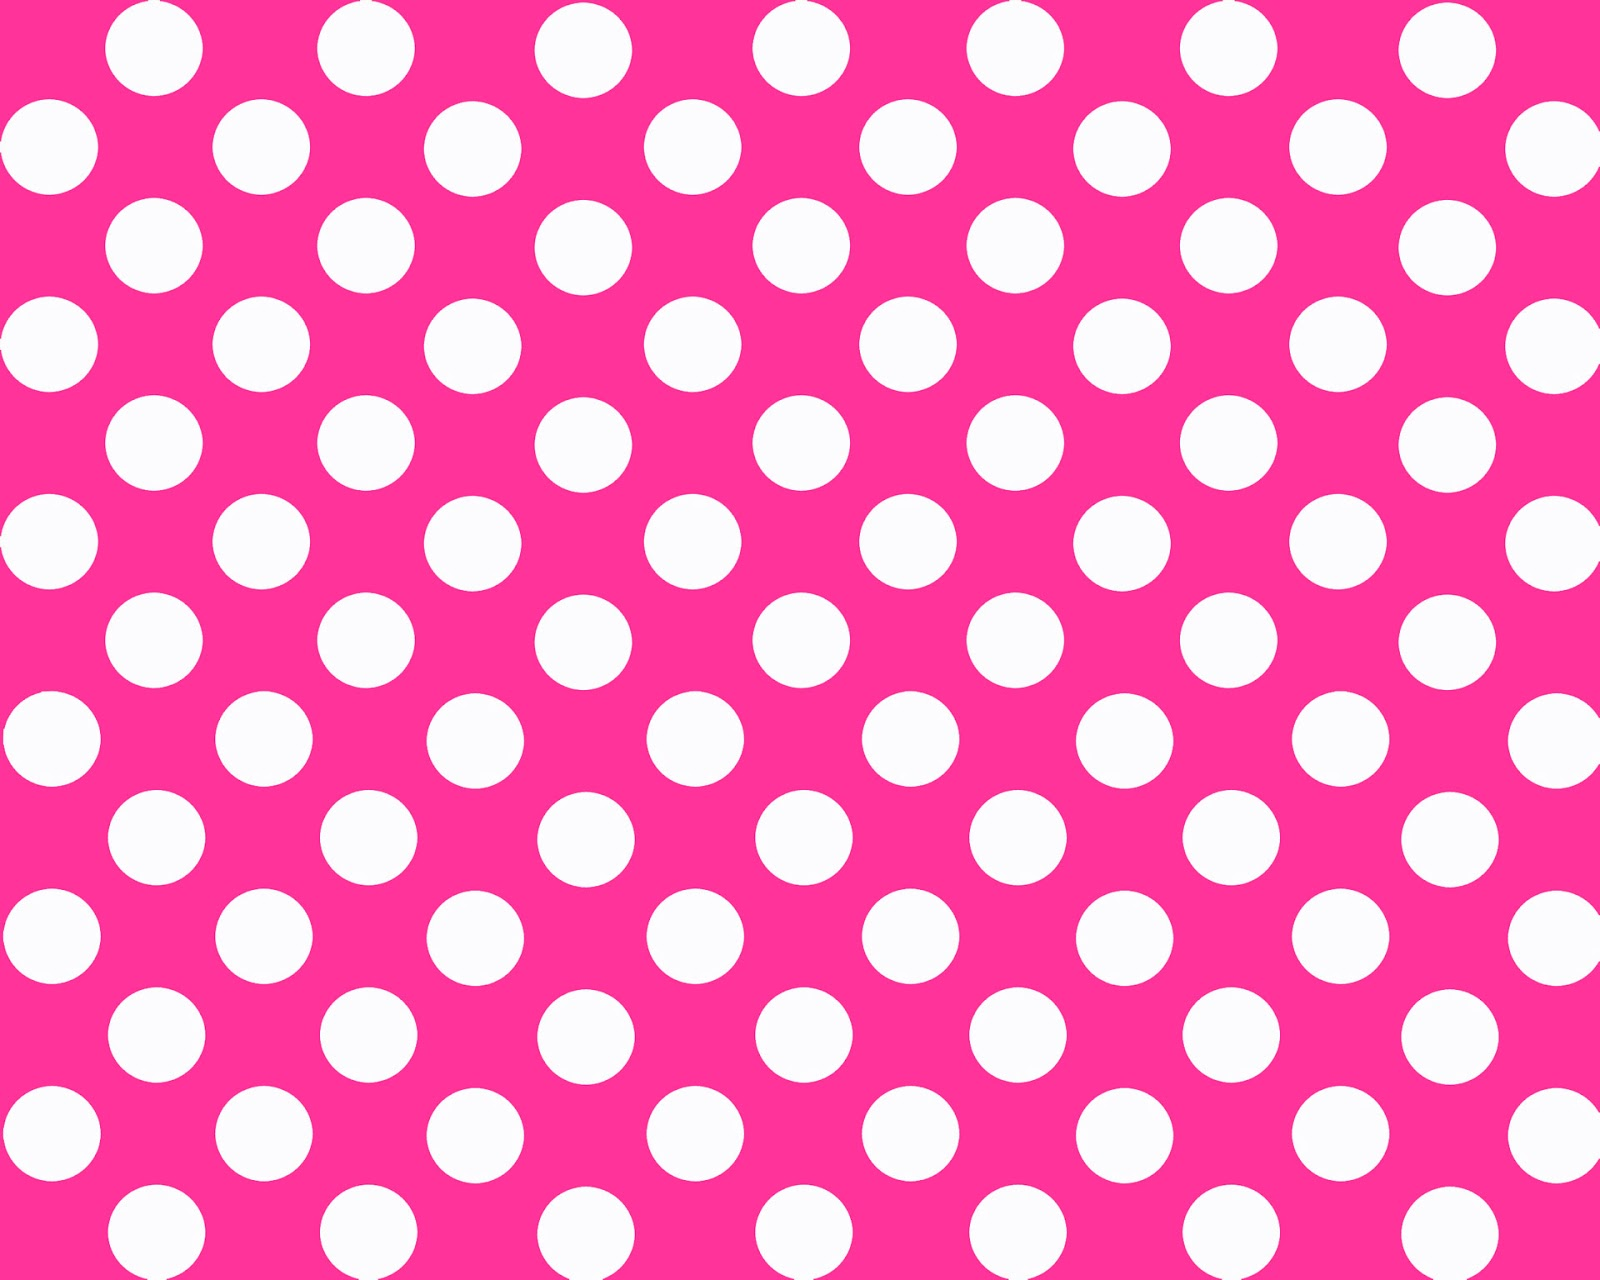 polka dots wallpaper - photo #19